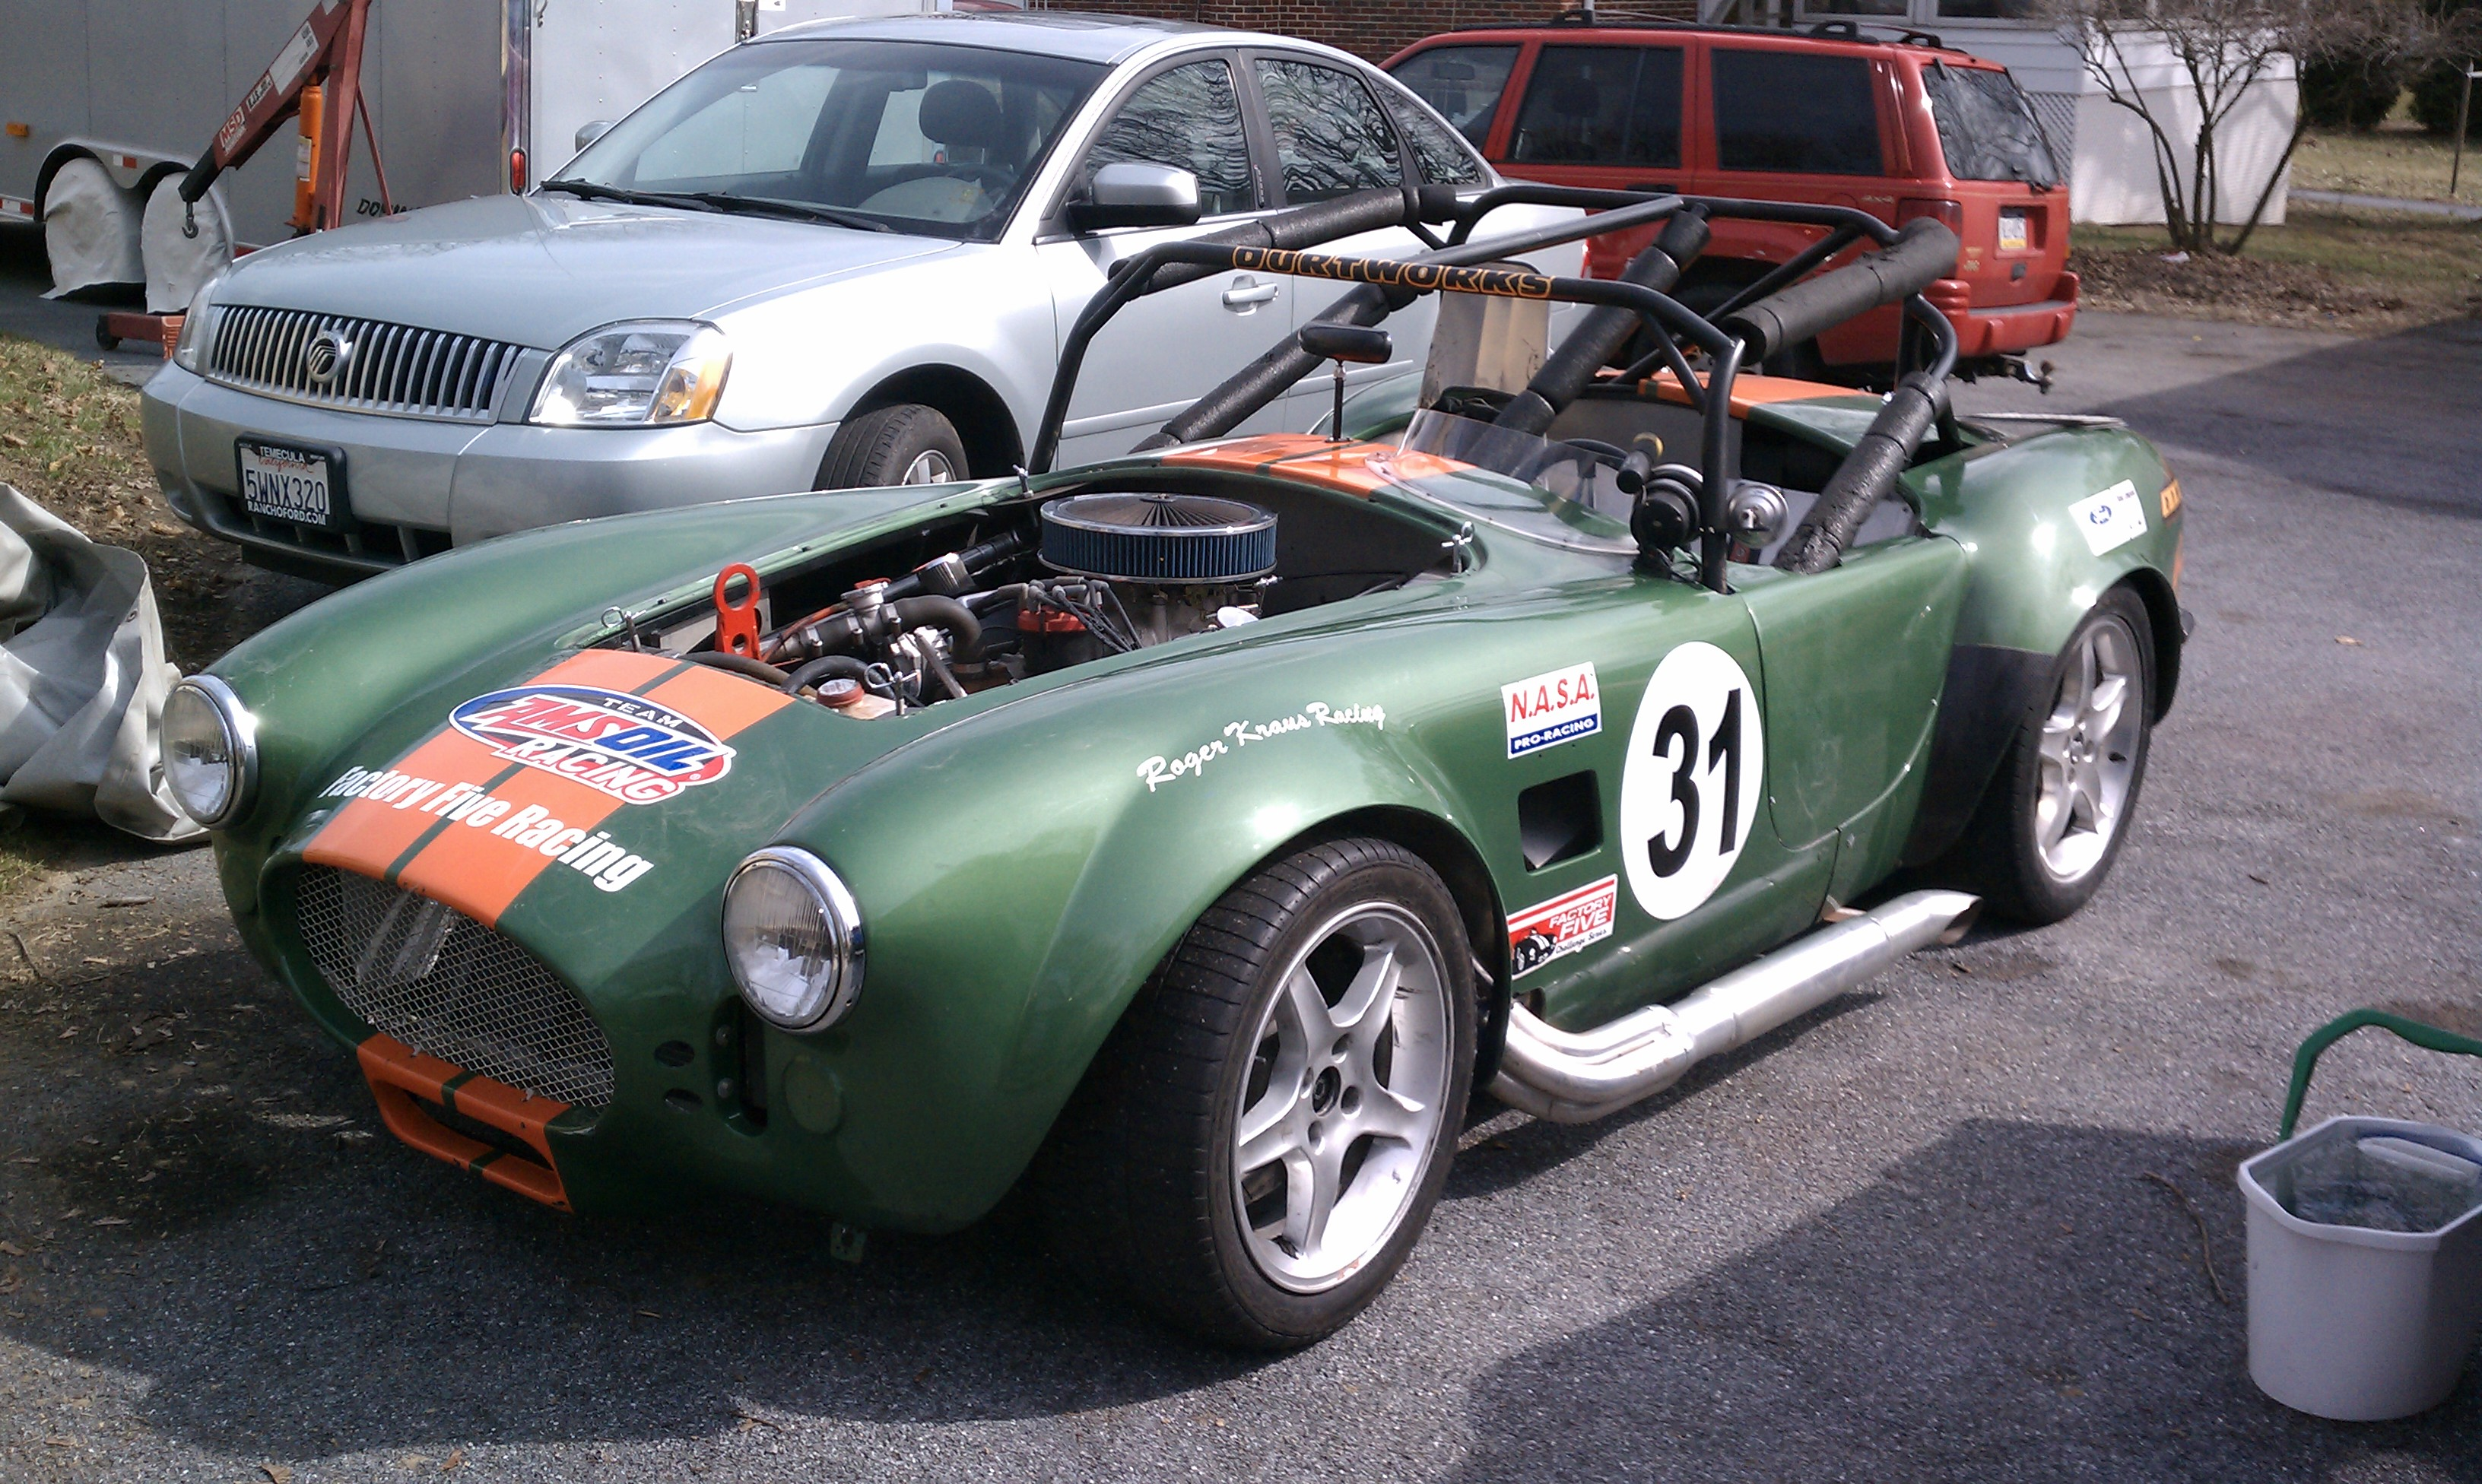 cobra replica, cobra kit car, kit car, kitcar, replica car